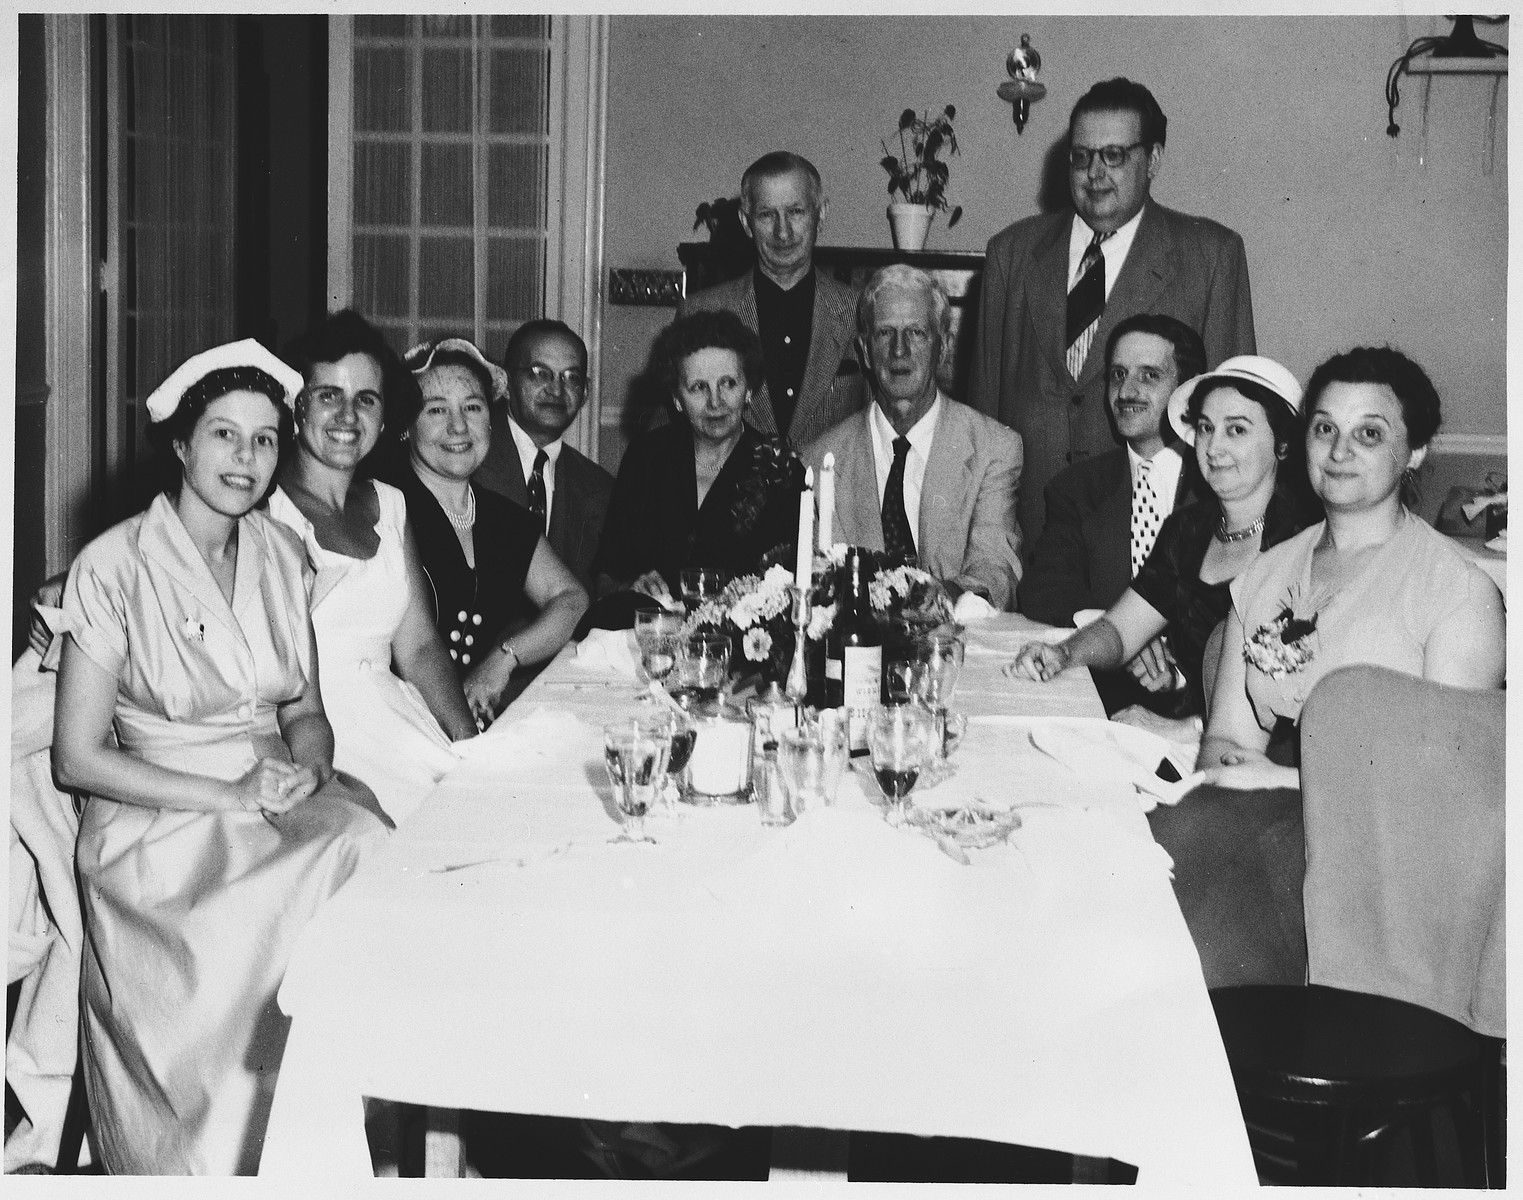 U.S. Ambassador to Israel, James G. McDonald, and his wife, Ruth, attend a luncheon in their honor hosted by a group of Saratogians at the Hotel Lafayette.